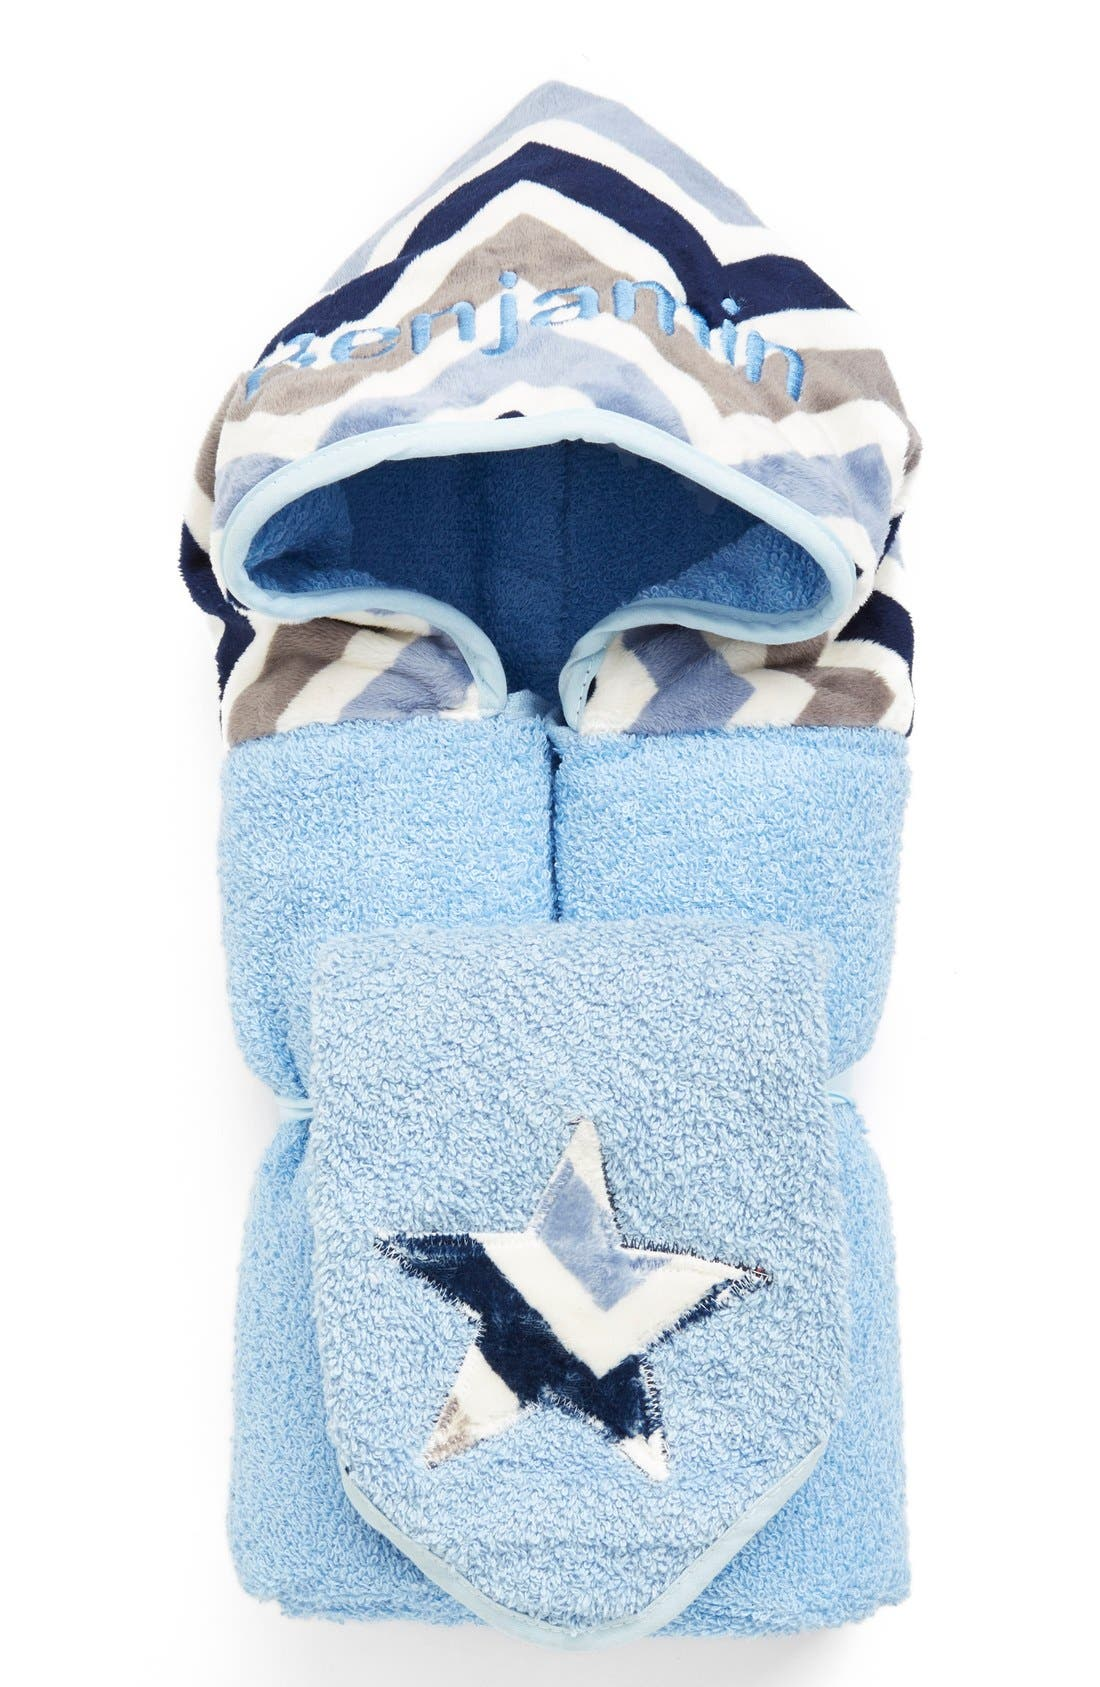 Personalized Hooded Towel,                             Main thumbnail 1, color,                             BLUE CHEVRON